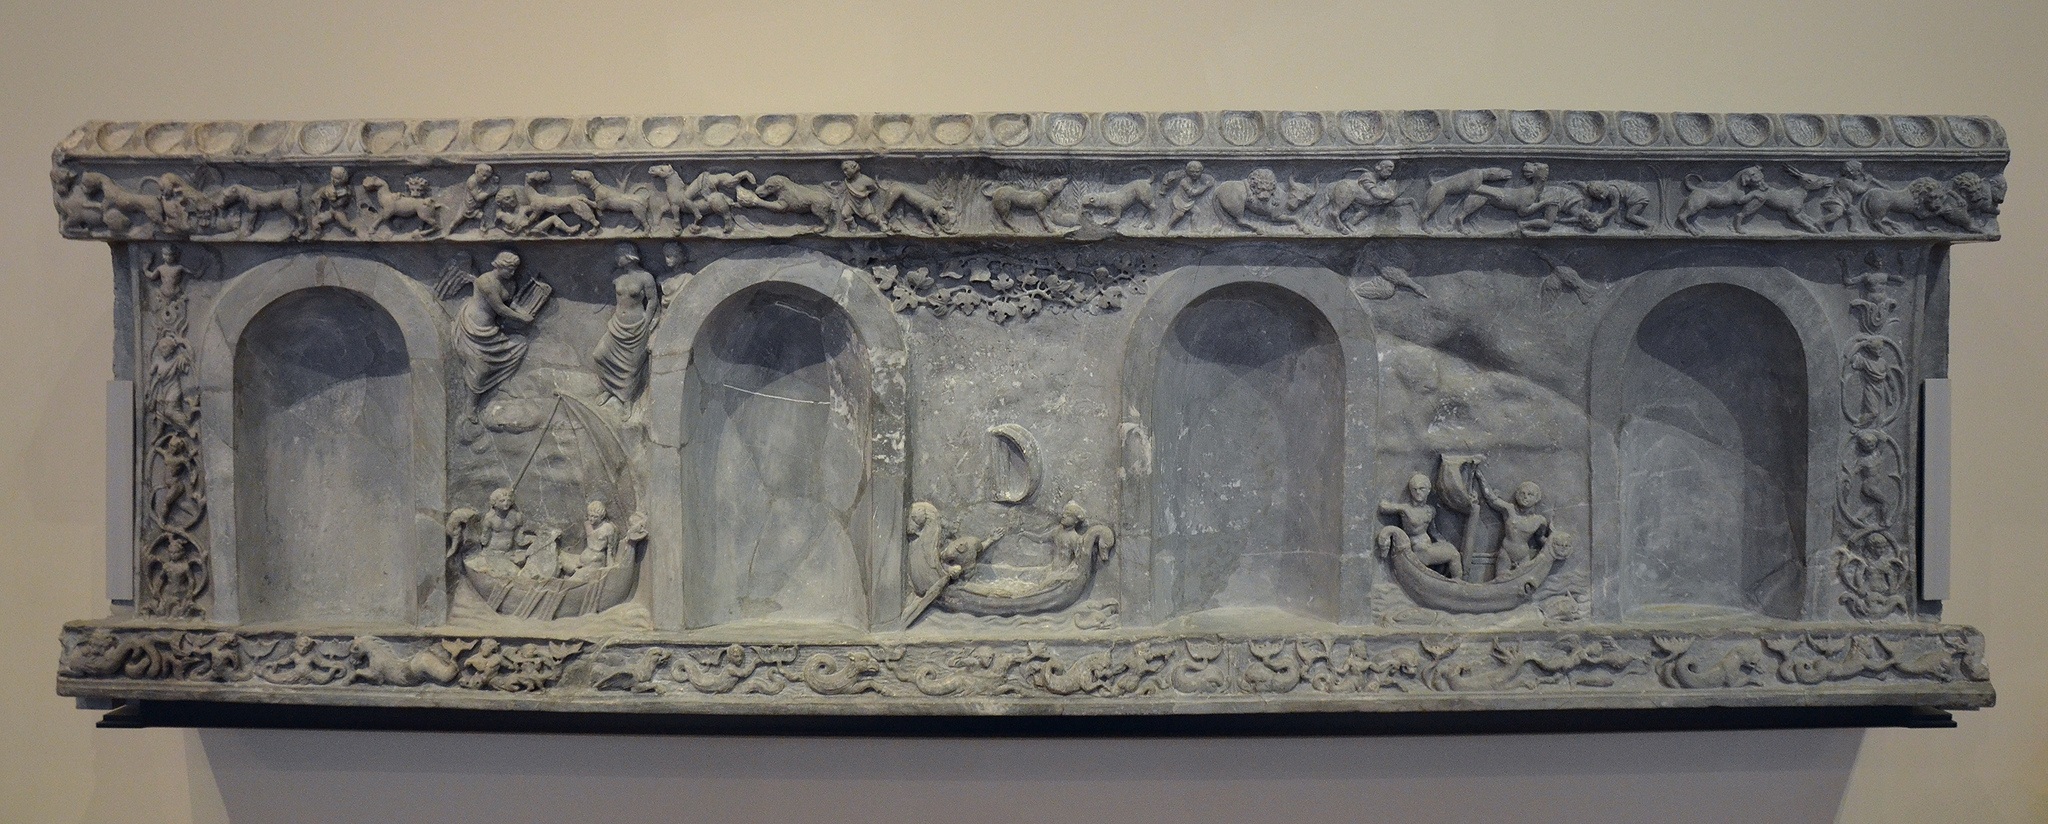 Art and sculptures from Hadrian's Villa: The Lansdowne Relief